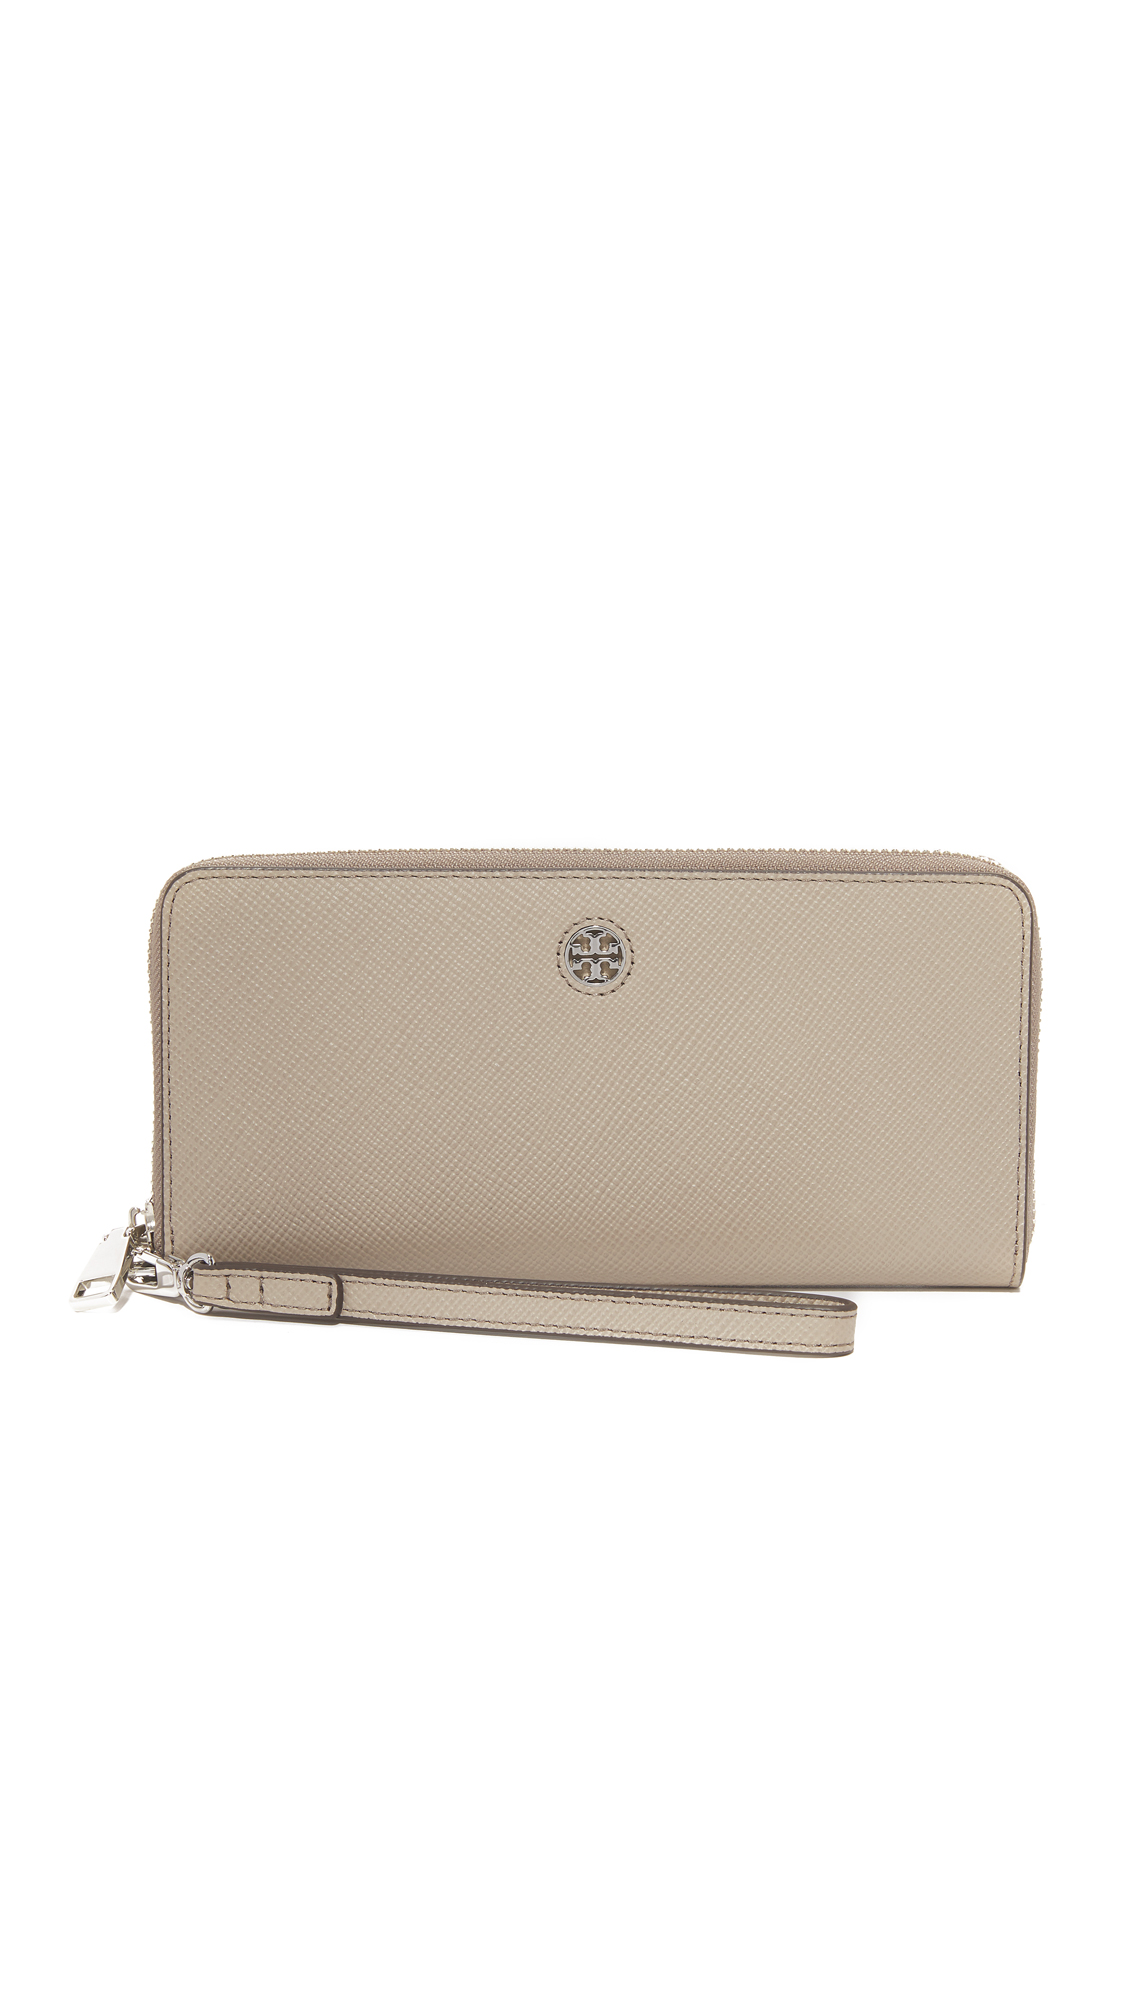 tory burch female tory burch perry zip passport continental wallet french gray